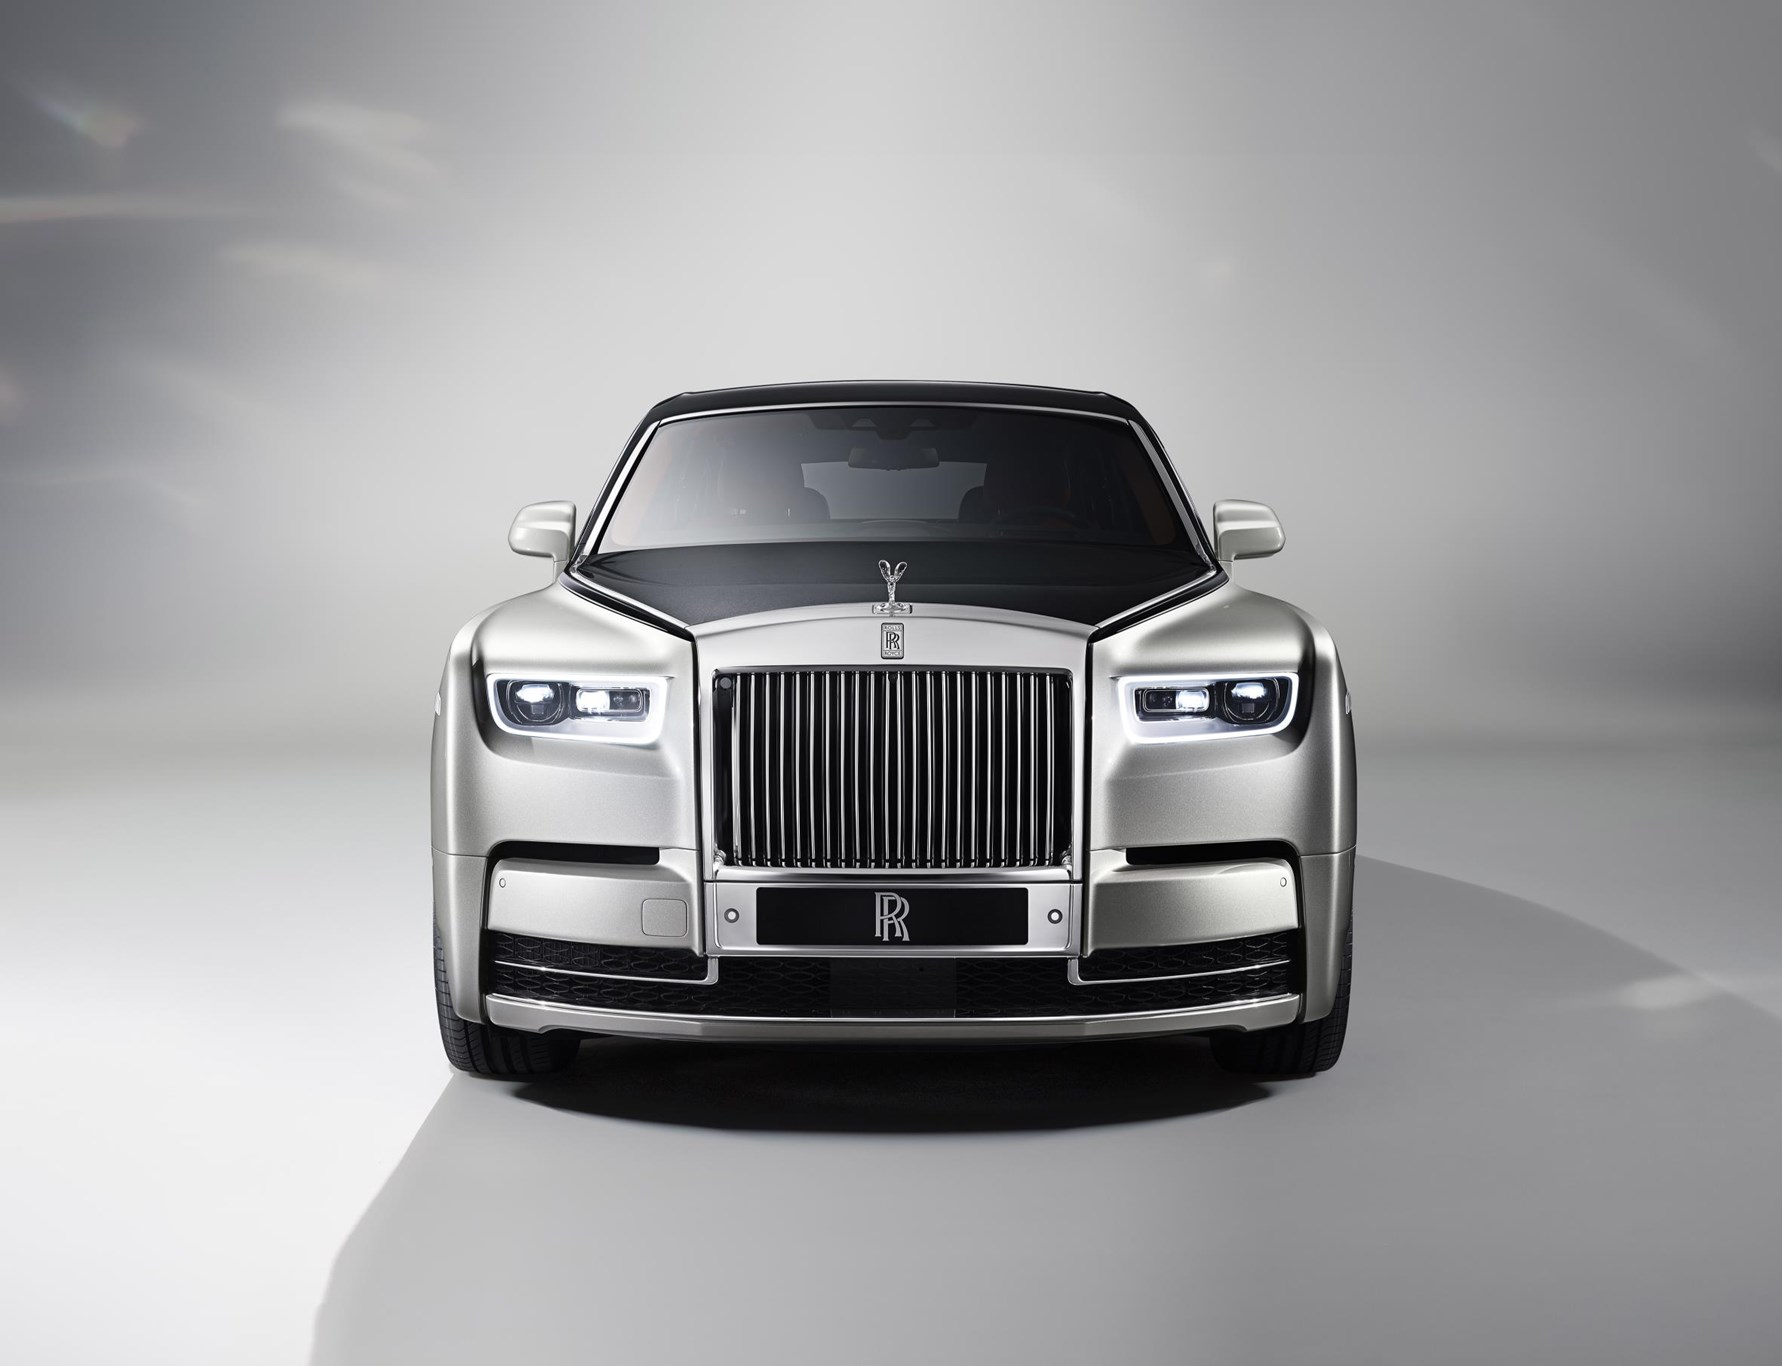 New 2018 Rolls-Royce Phantom VIII | CAR Magazine